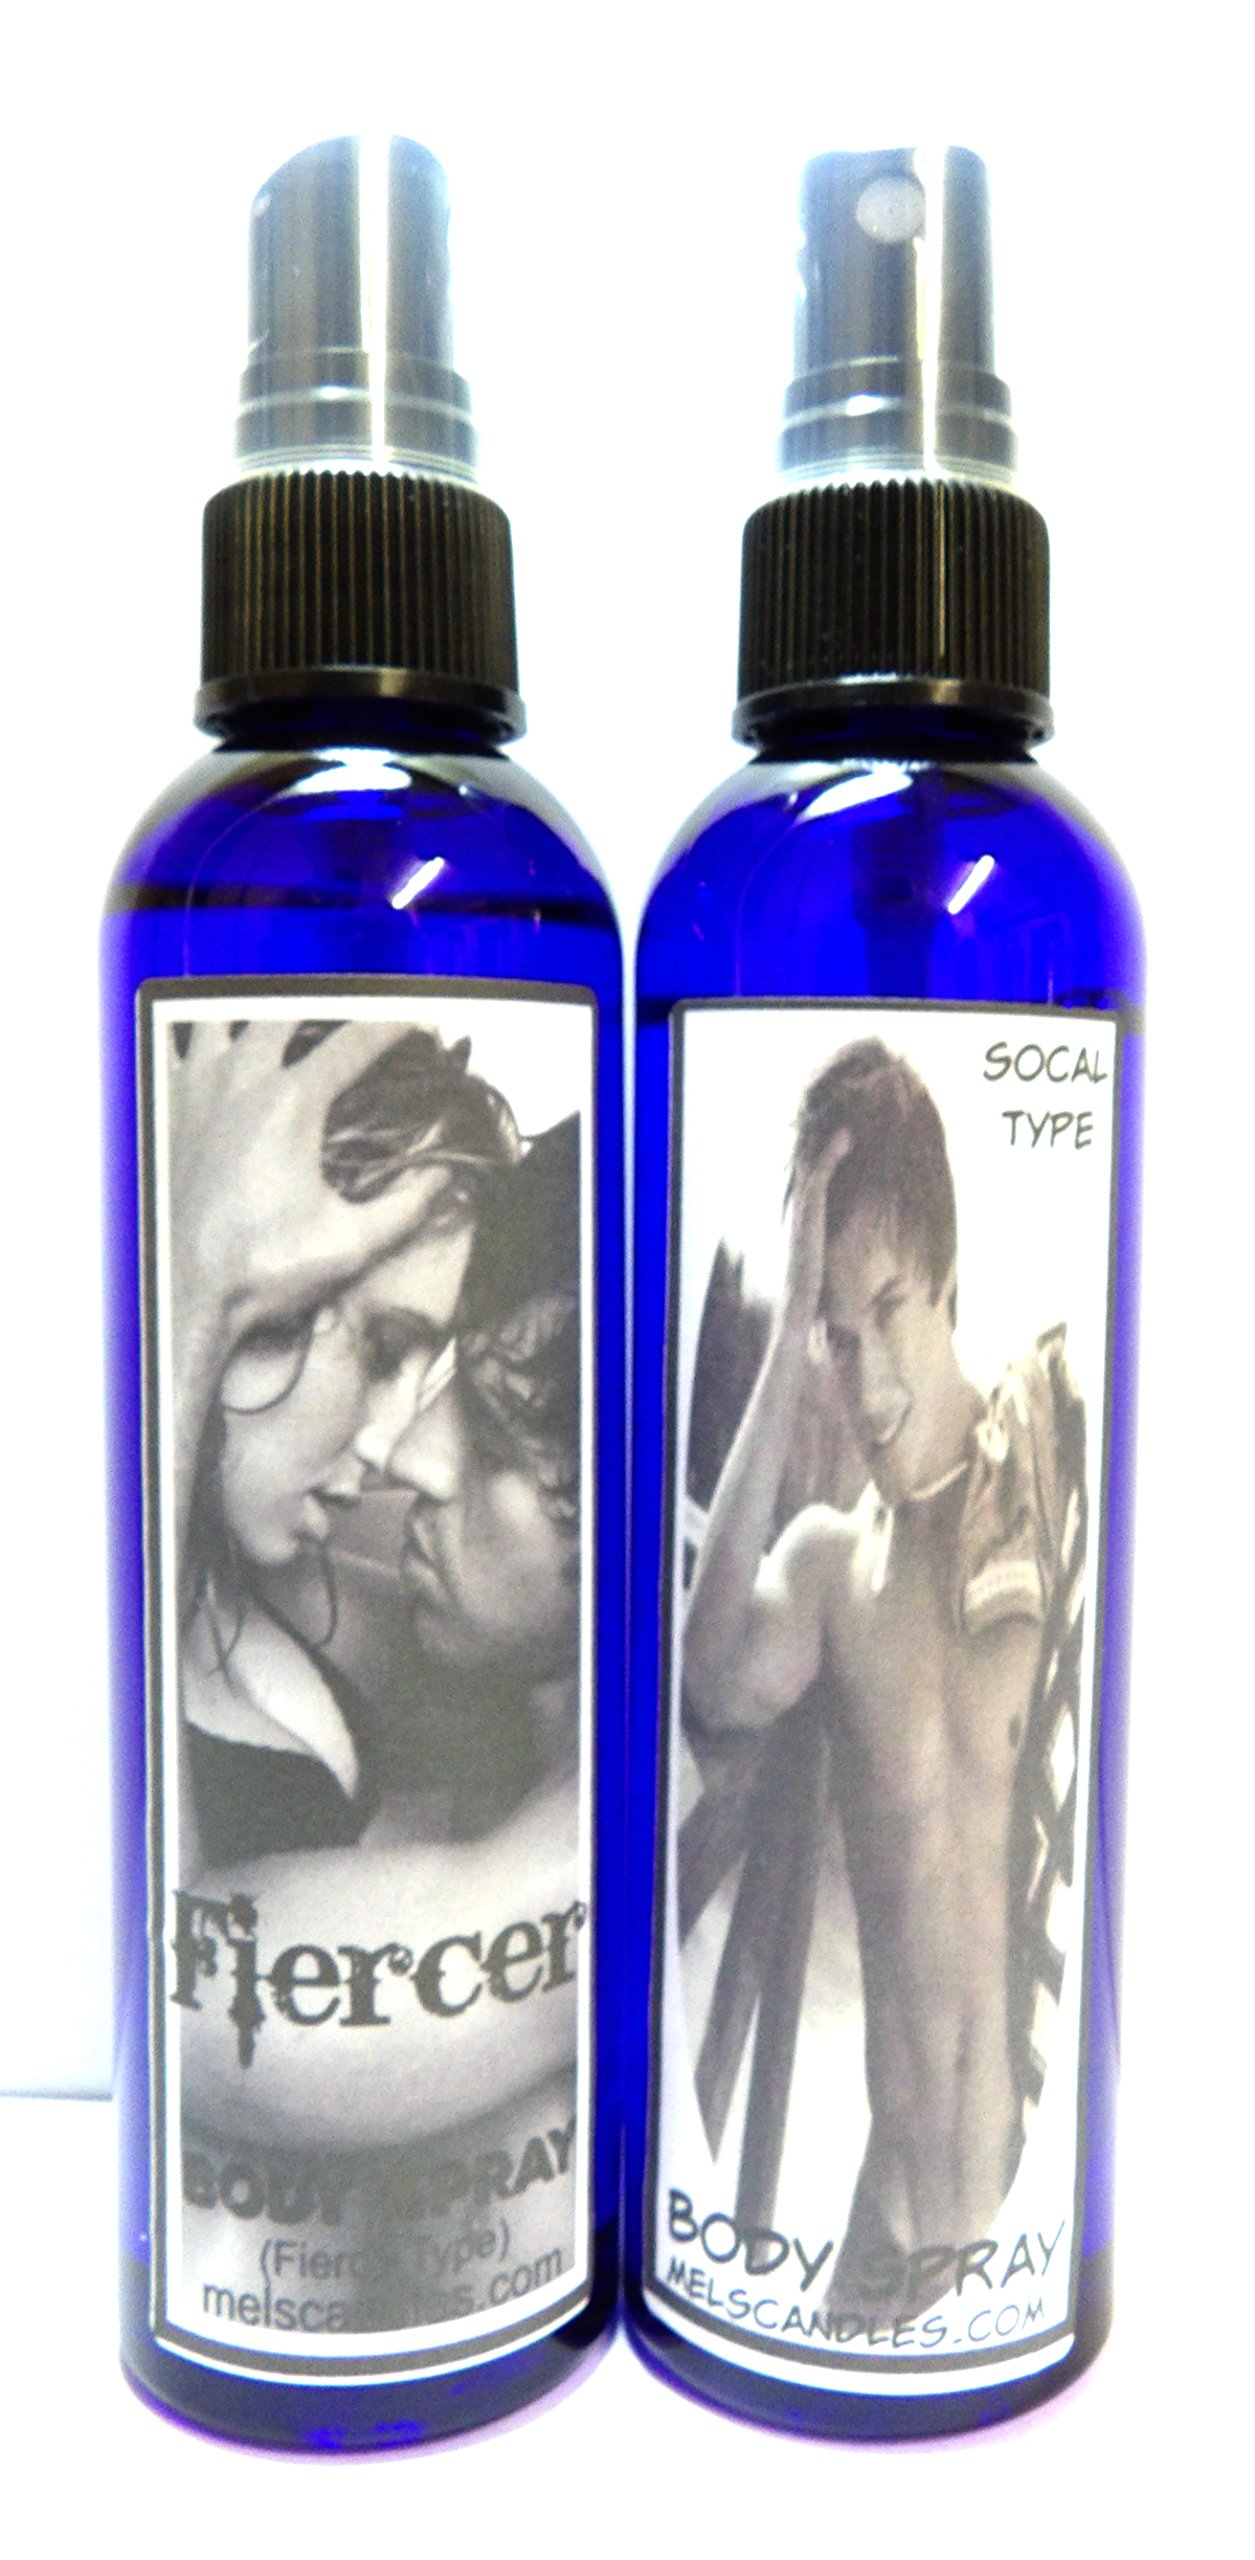 Combo Deal - 2 4oz Body Sprays - Our Versions of Abercrombie & Fitch's Fierce & Version of Hollisters Men Socal